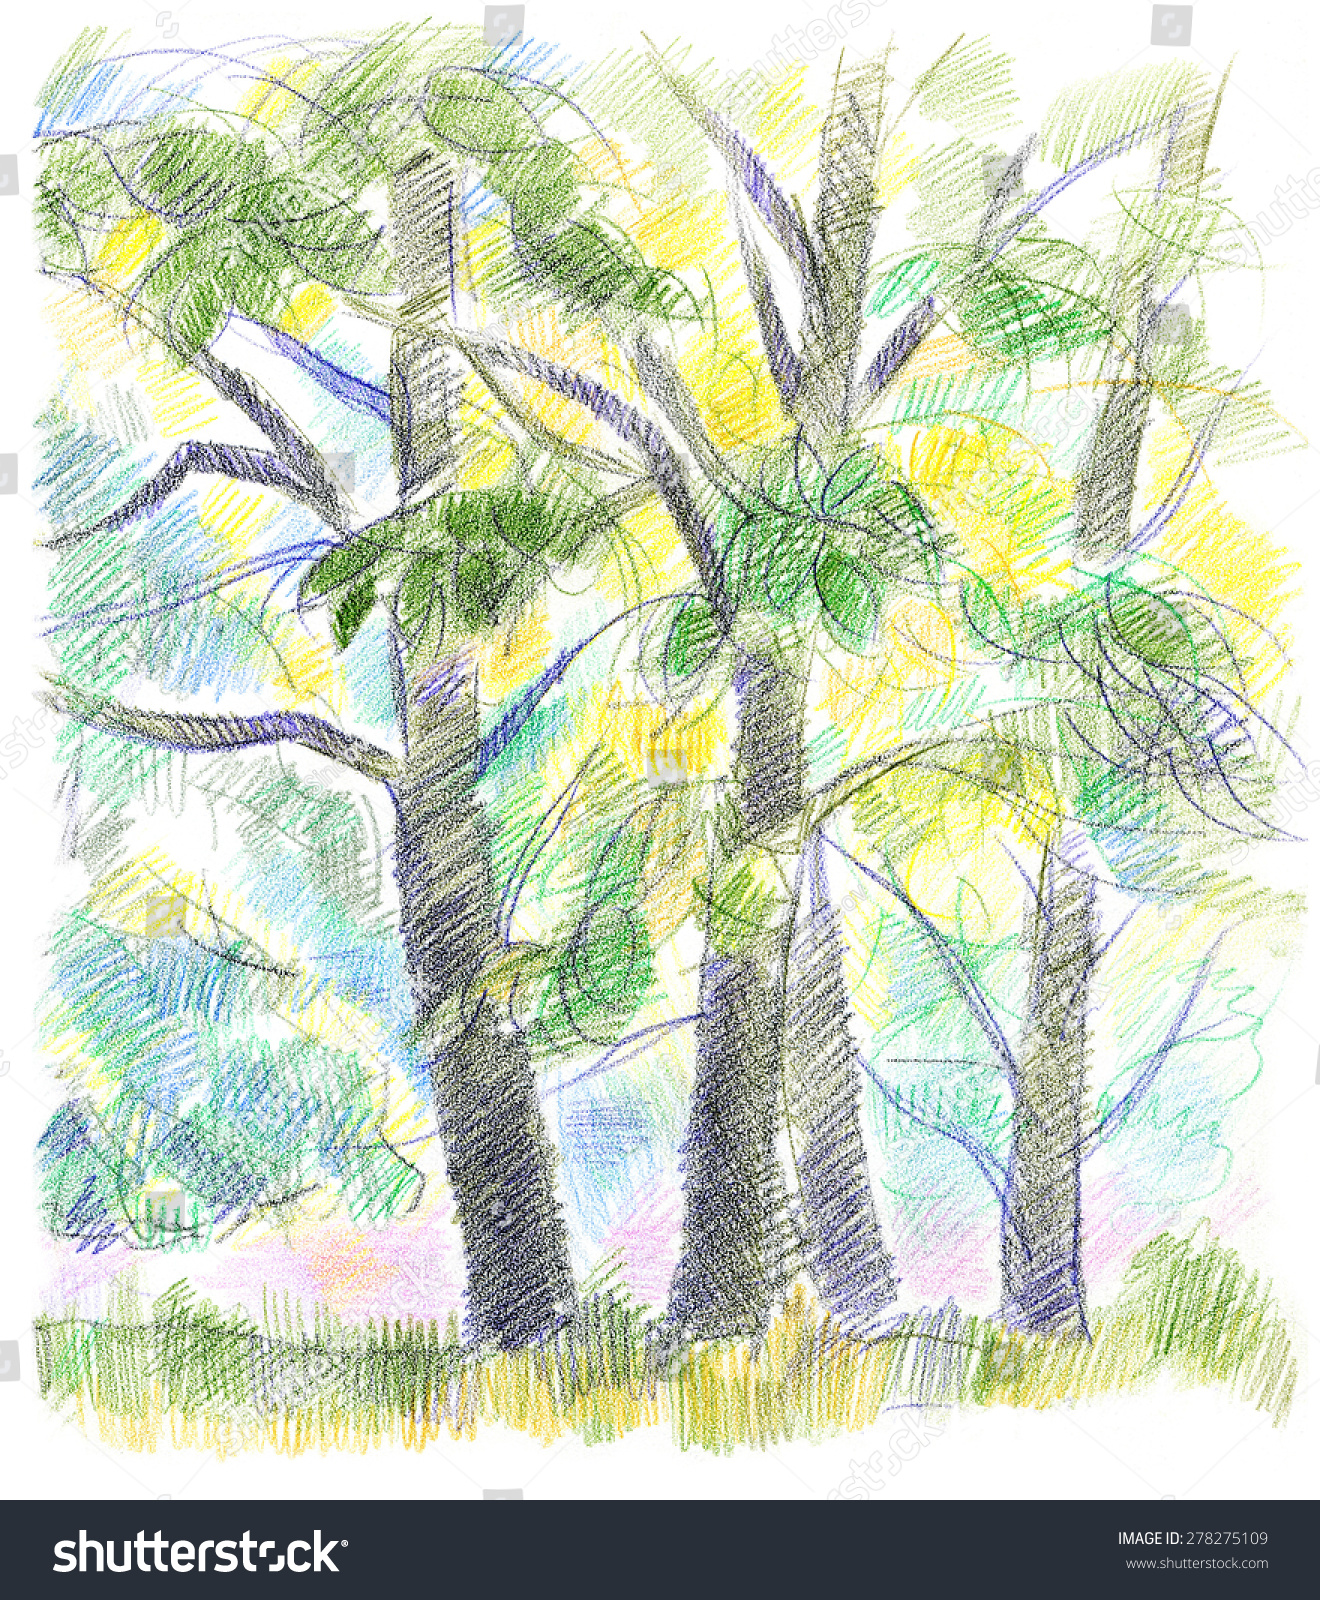 Expressive Colorful Handdrawn Trees Near River Stock Illustration ...